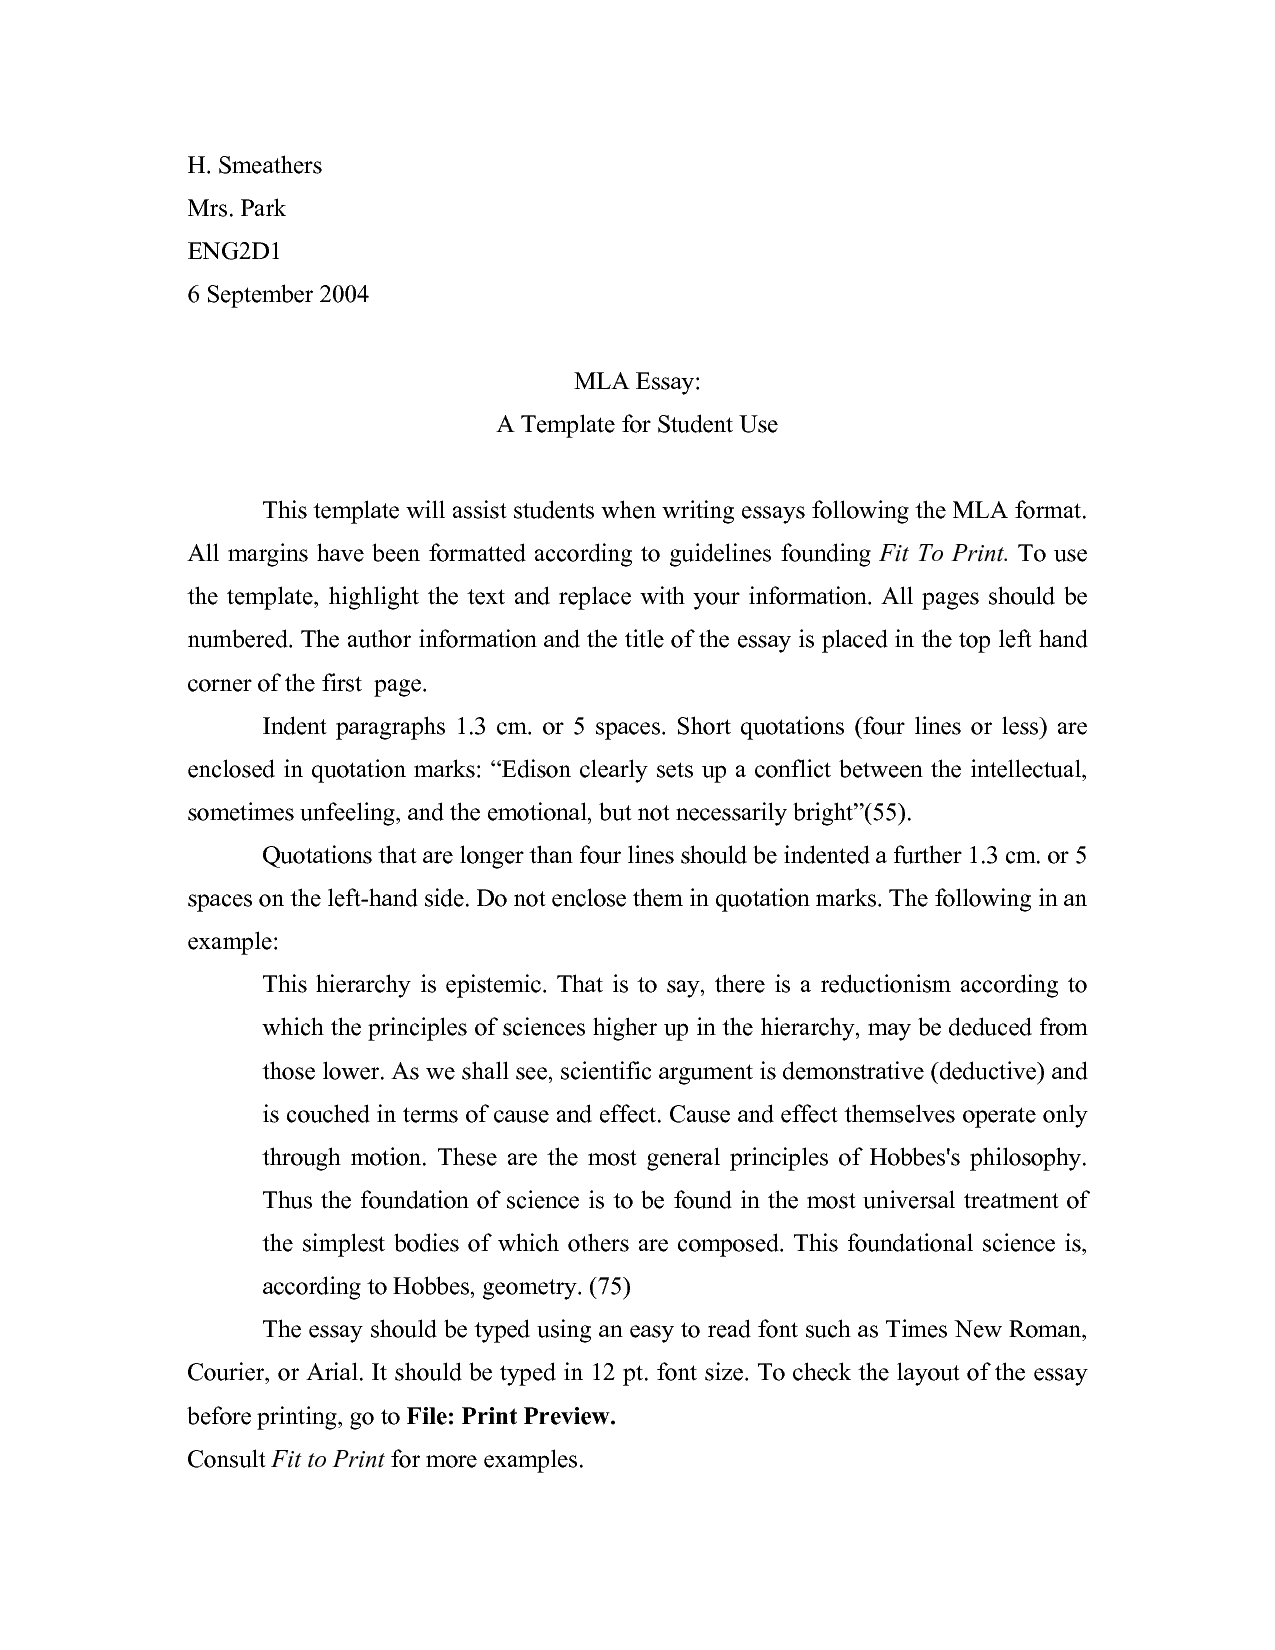 006 Research Paper Mla Format Template Awesome Outline Example Full